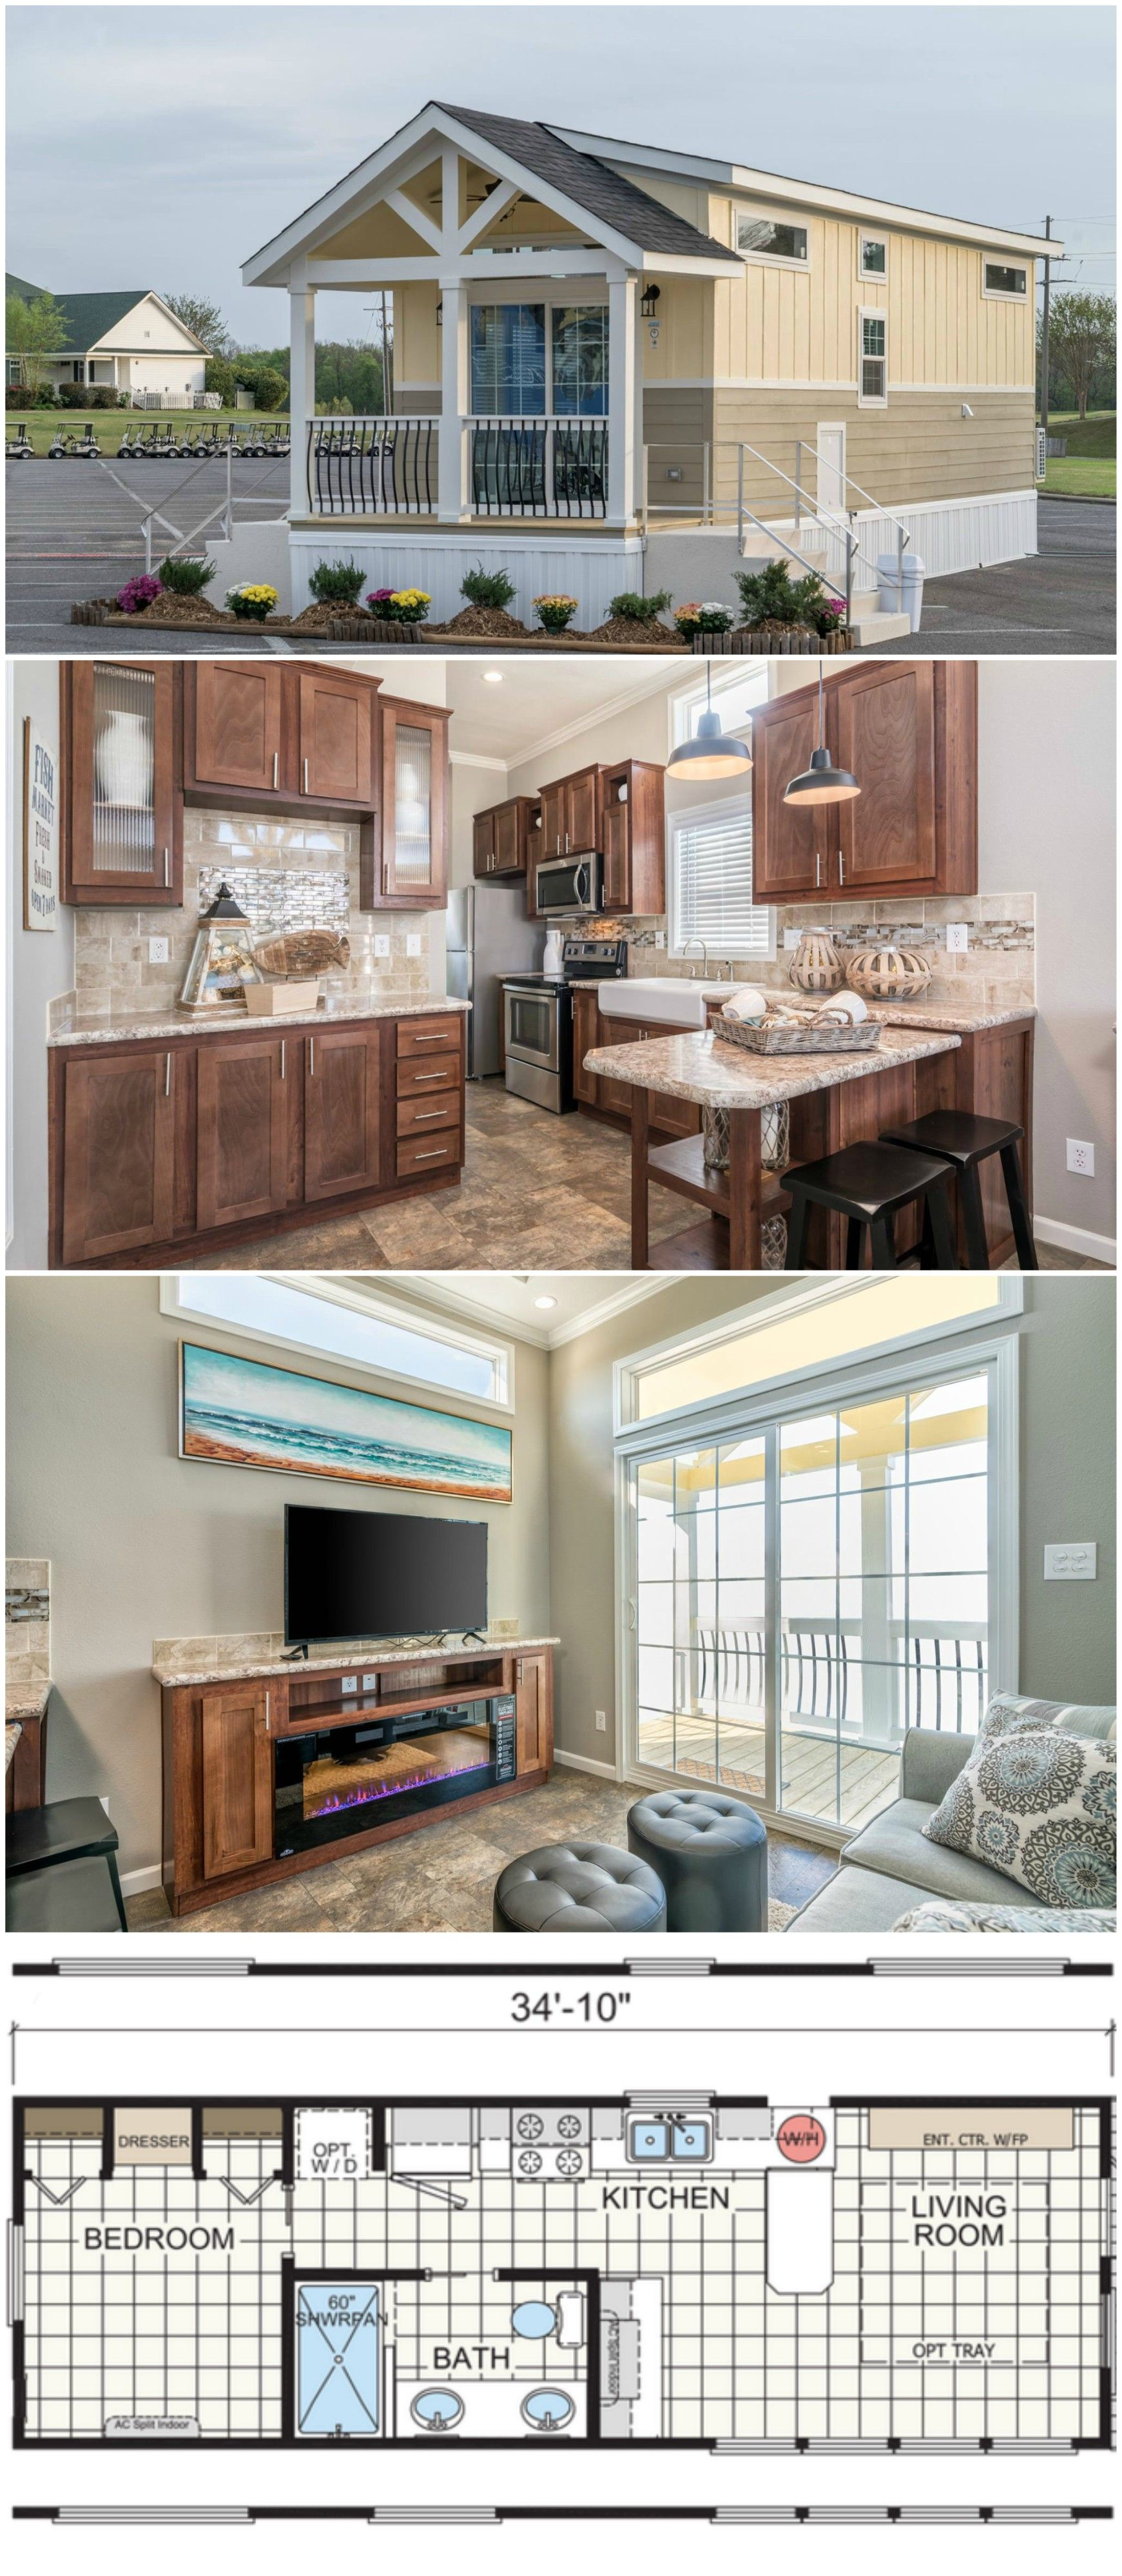 This Park Model Home Is A 399 Square Foot One Bedroom And One Bathroom Tiny Home Dream The Kitchen Has Fu Tiny Mobile House Tiny House Cabin Tiny House Design